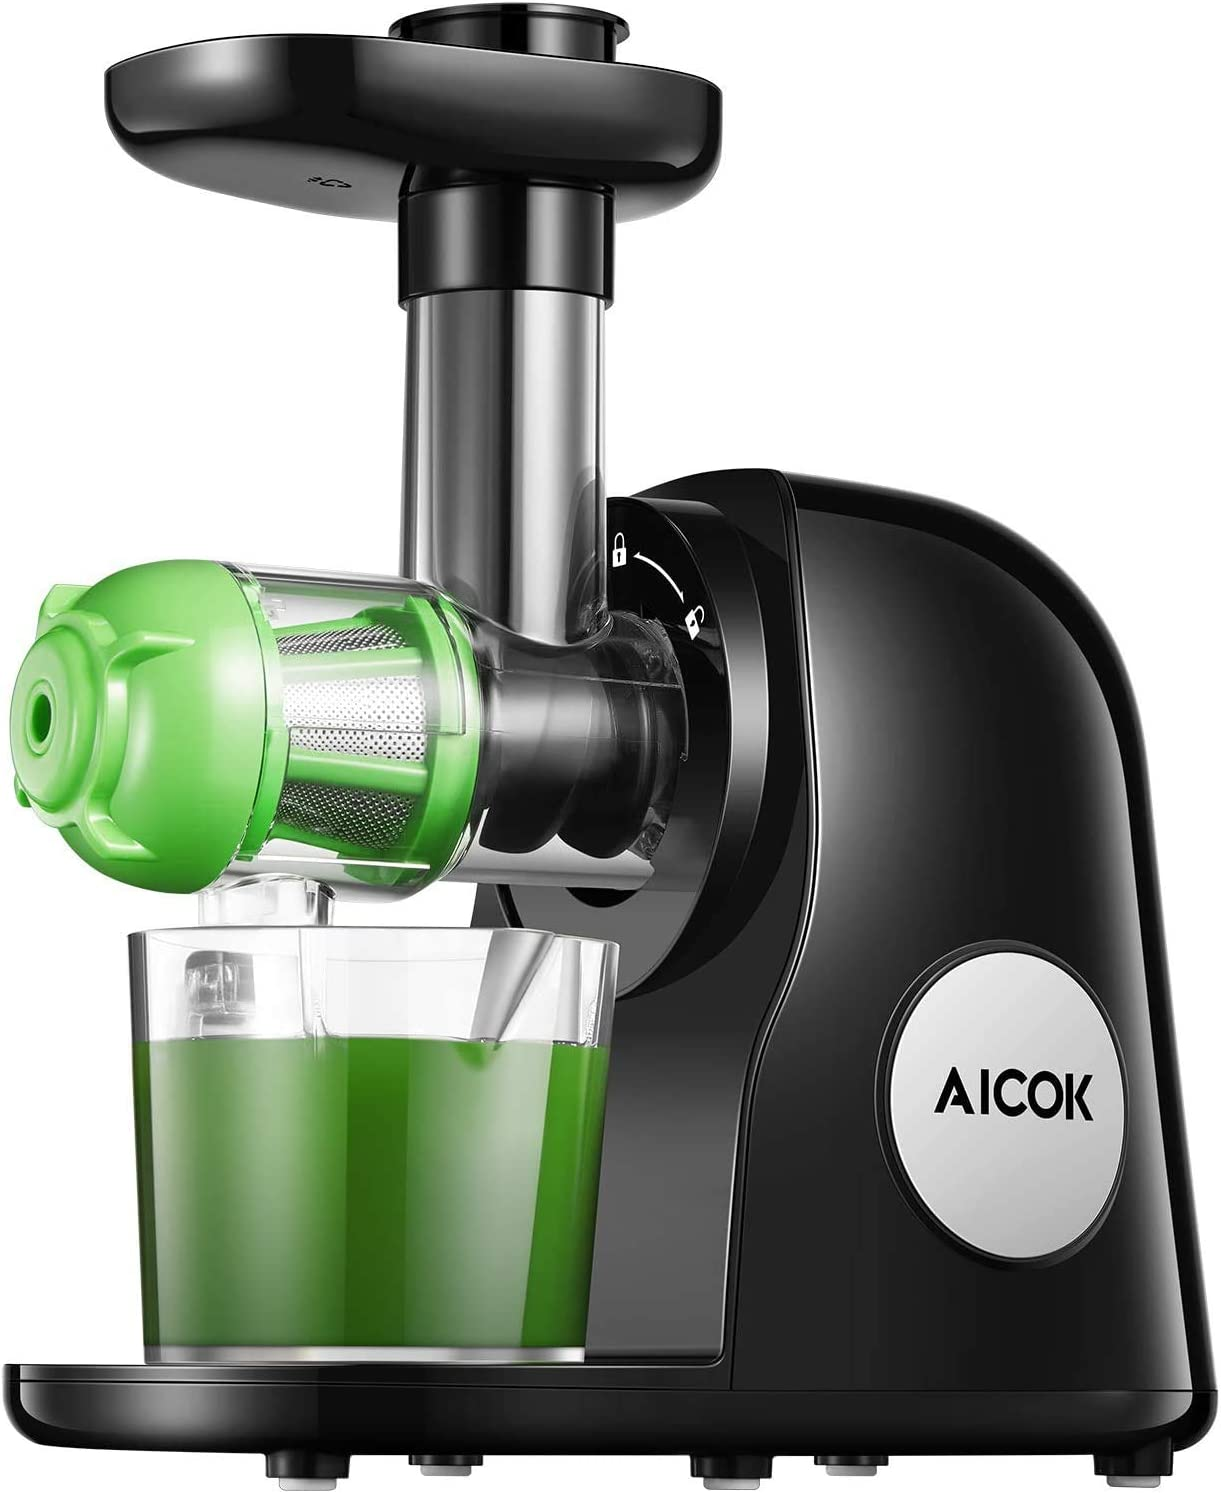 61 4VHJ9%2BUL. AC SL1498 The Best Masticating Juicer 2021 - Reviews & Buyer's Guide